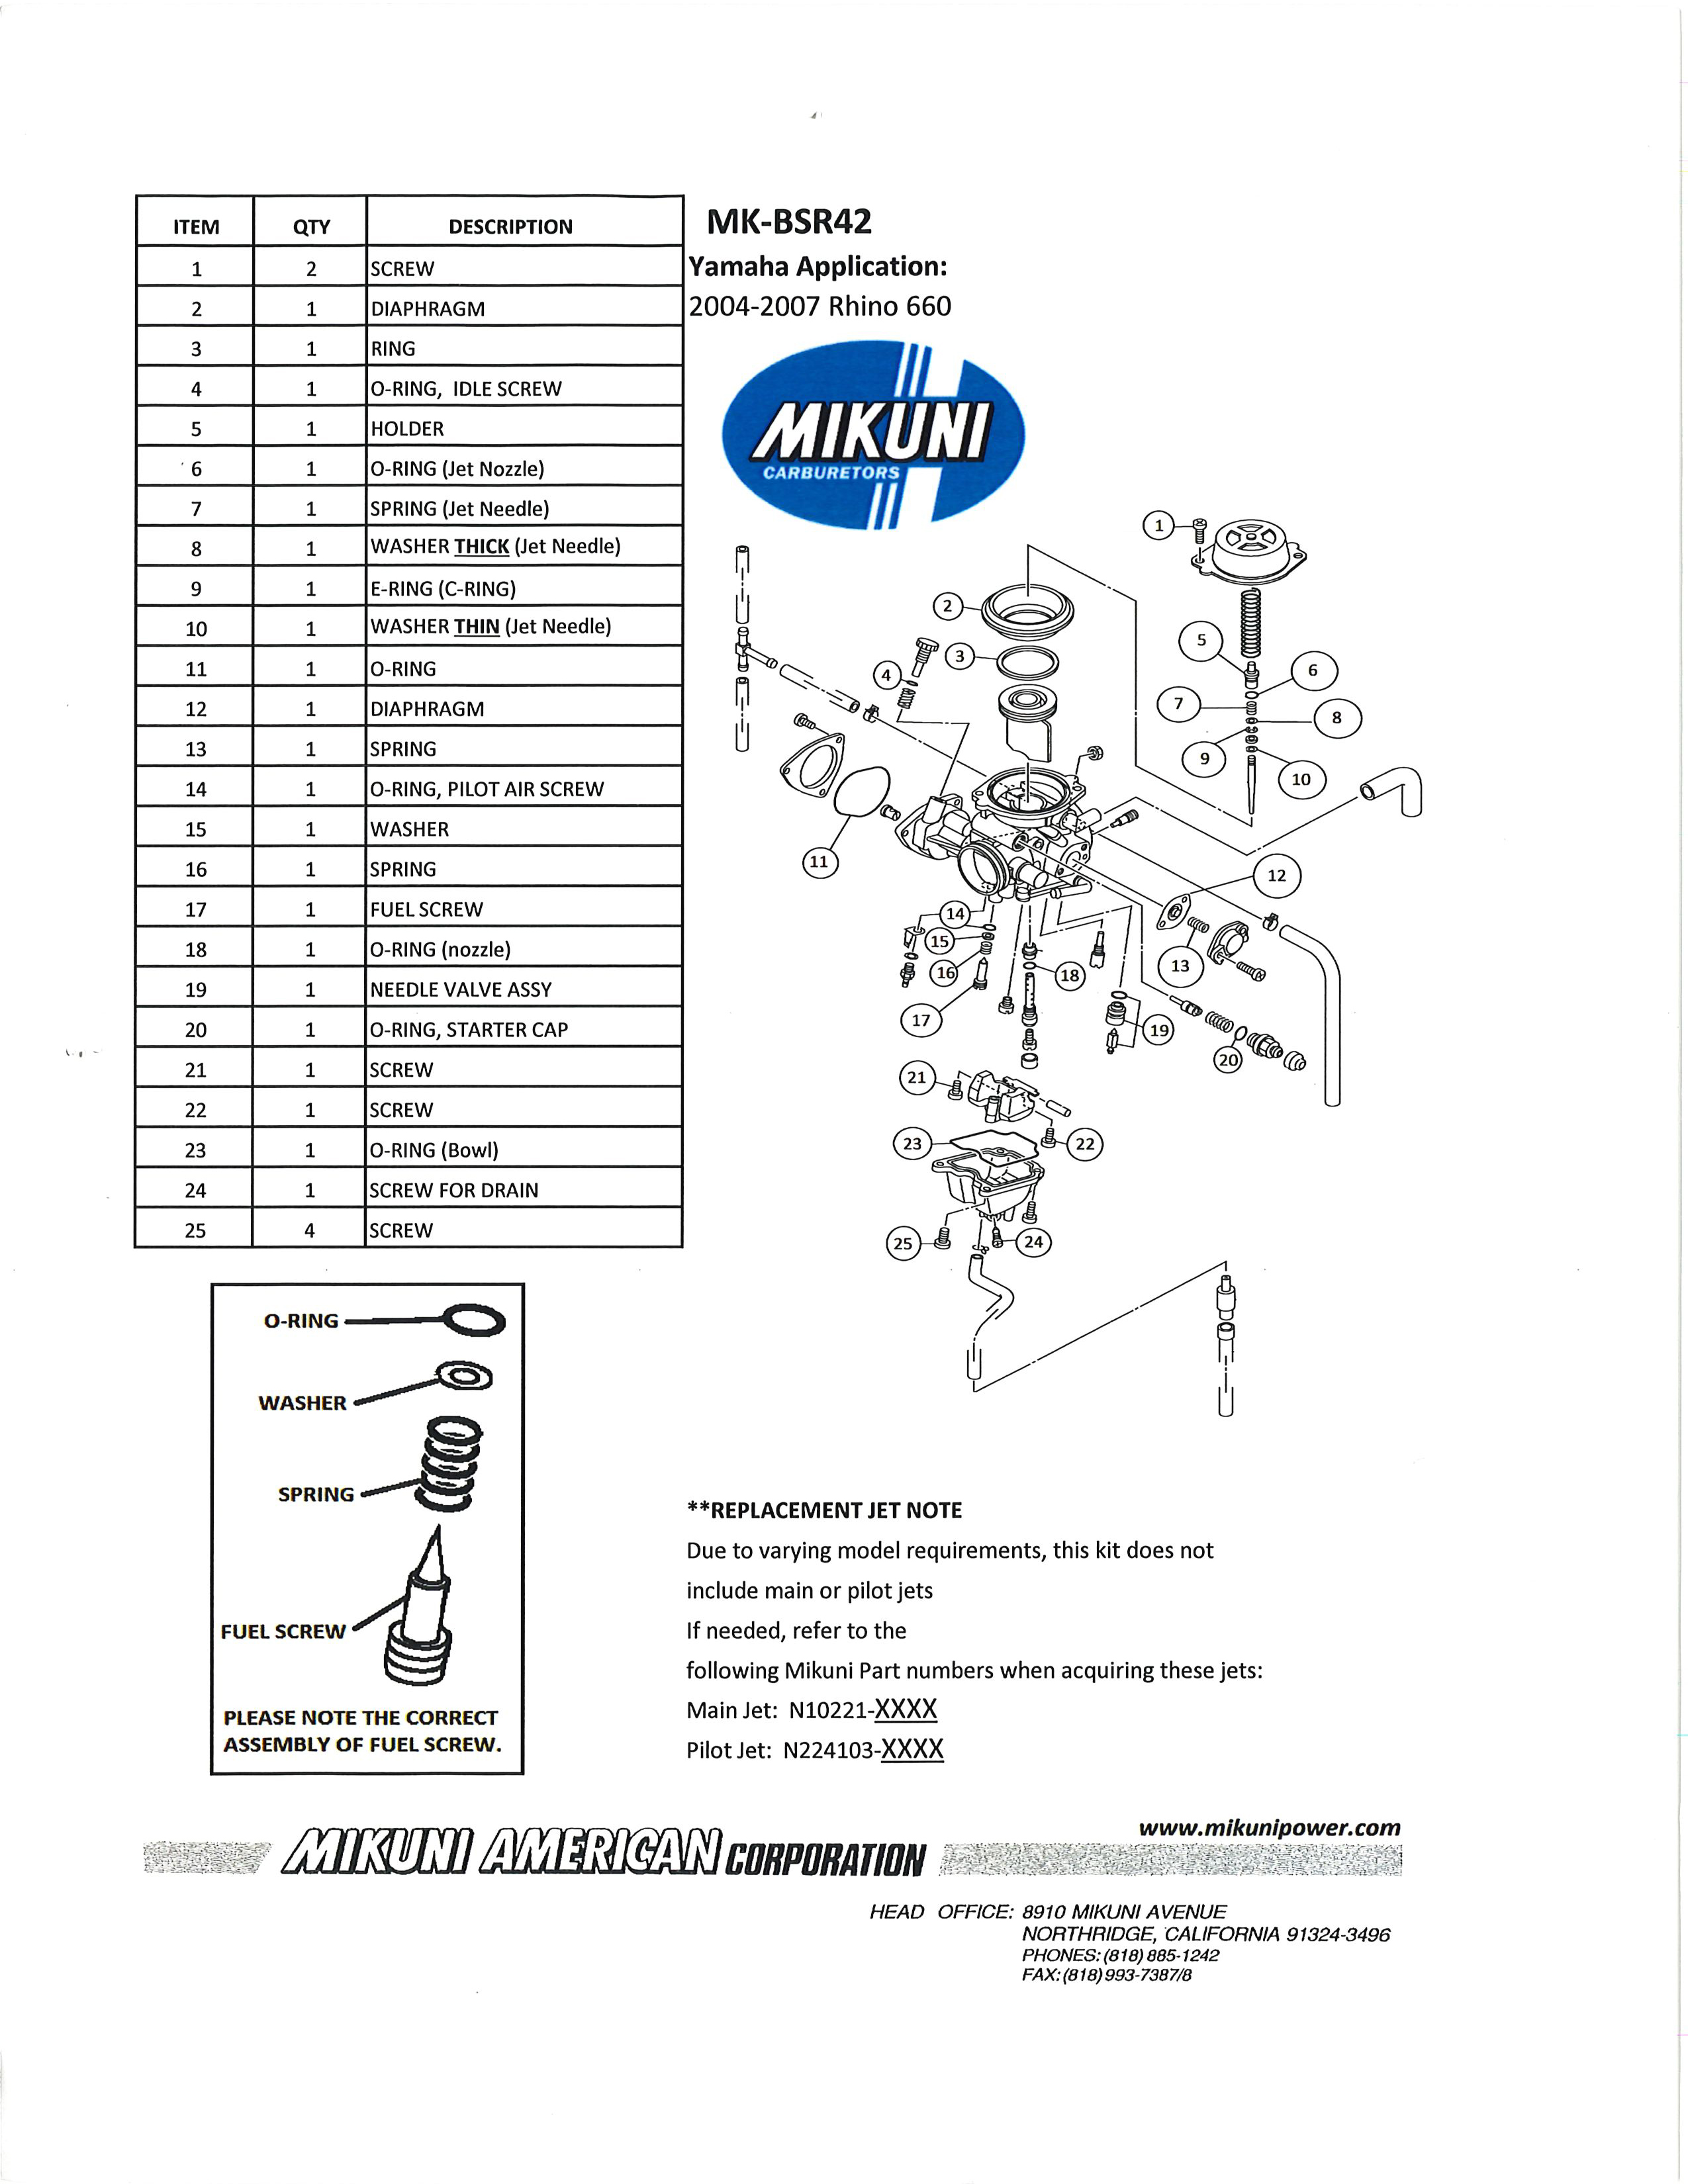 mikuni carburetor exploded view diagrams